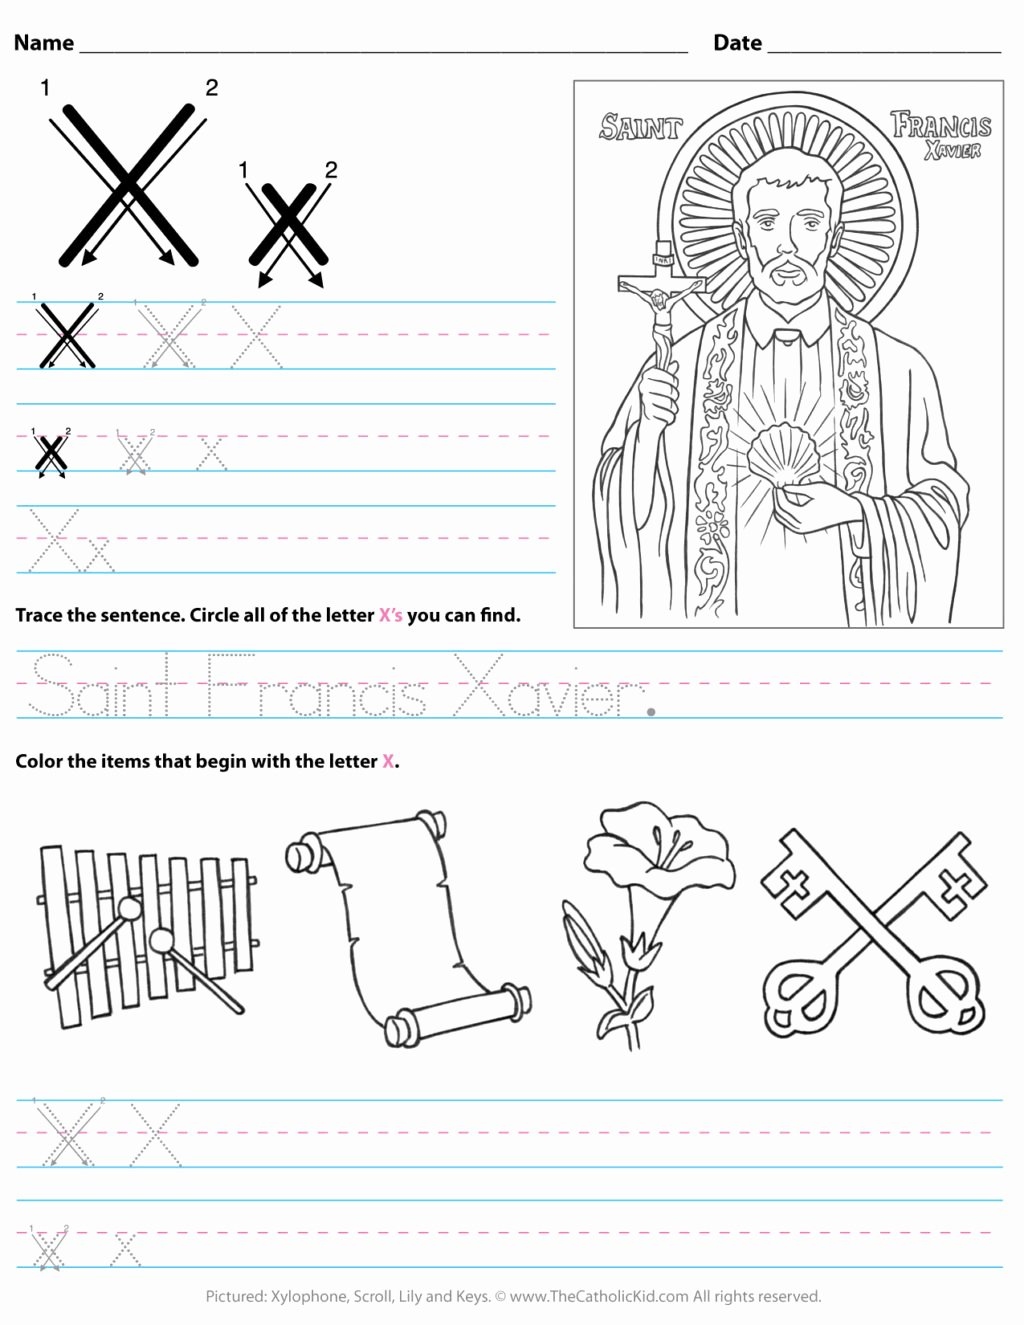 Letter X Worksheets for Preschoolers Beautiful Worksheet Catholic Alphabet Letter X Worksheet